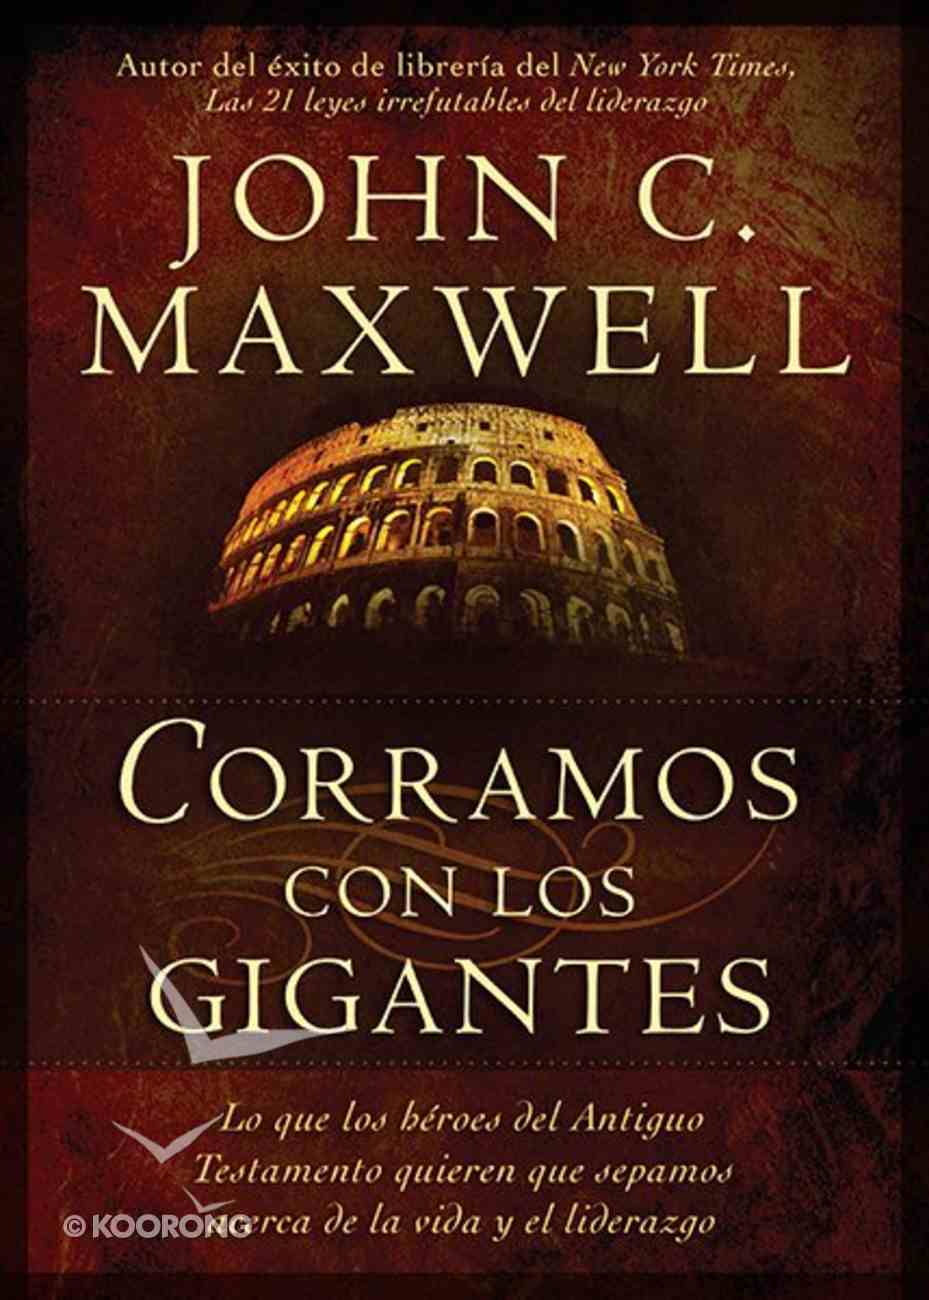 Corramos Con Los Gigantes (Running With The Giants) Paperback